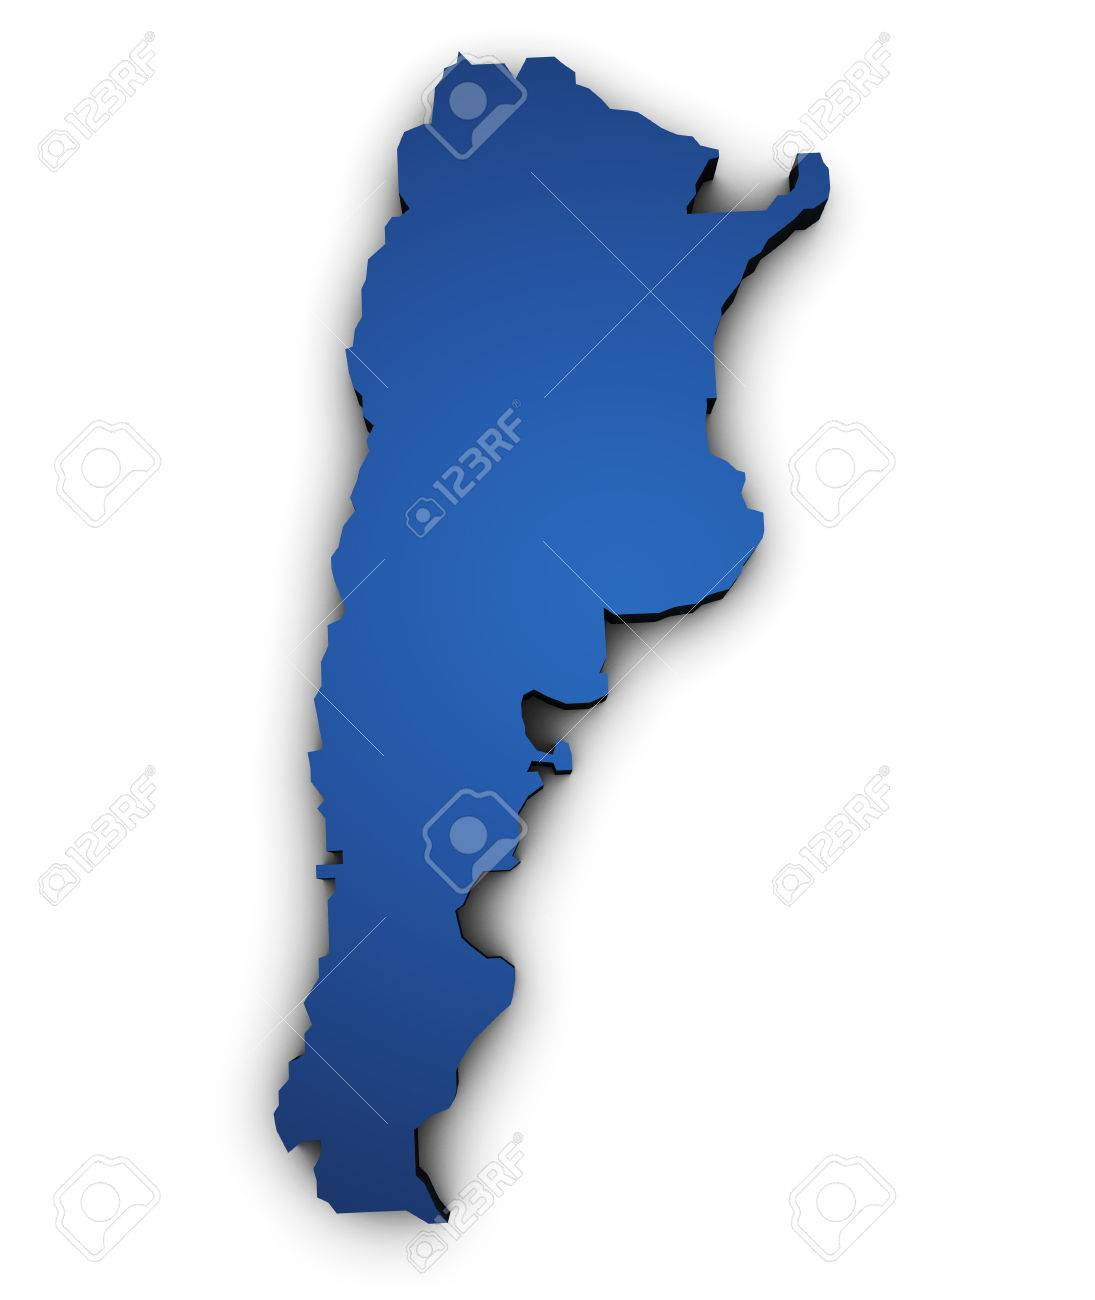 Shape D Of Argentina Map Colored In Blue And Isolated On White - Argentina map shape